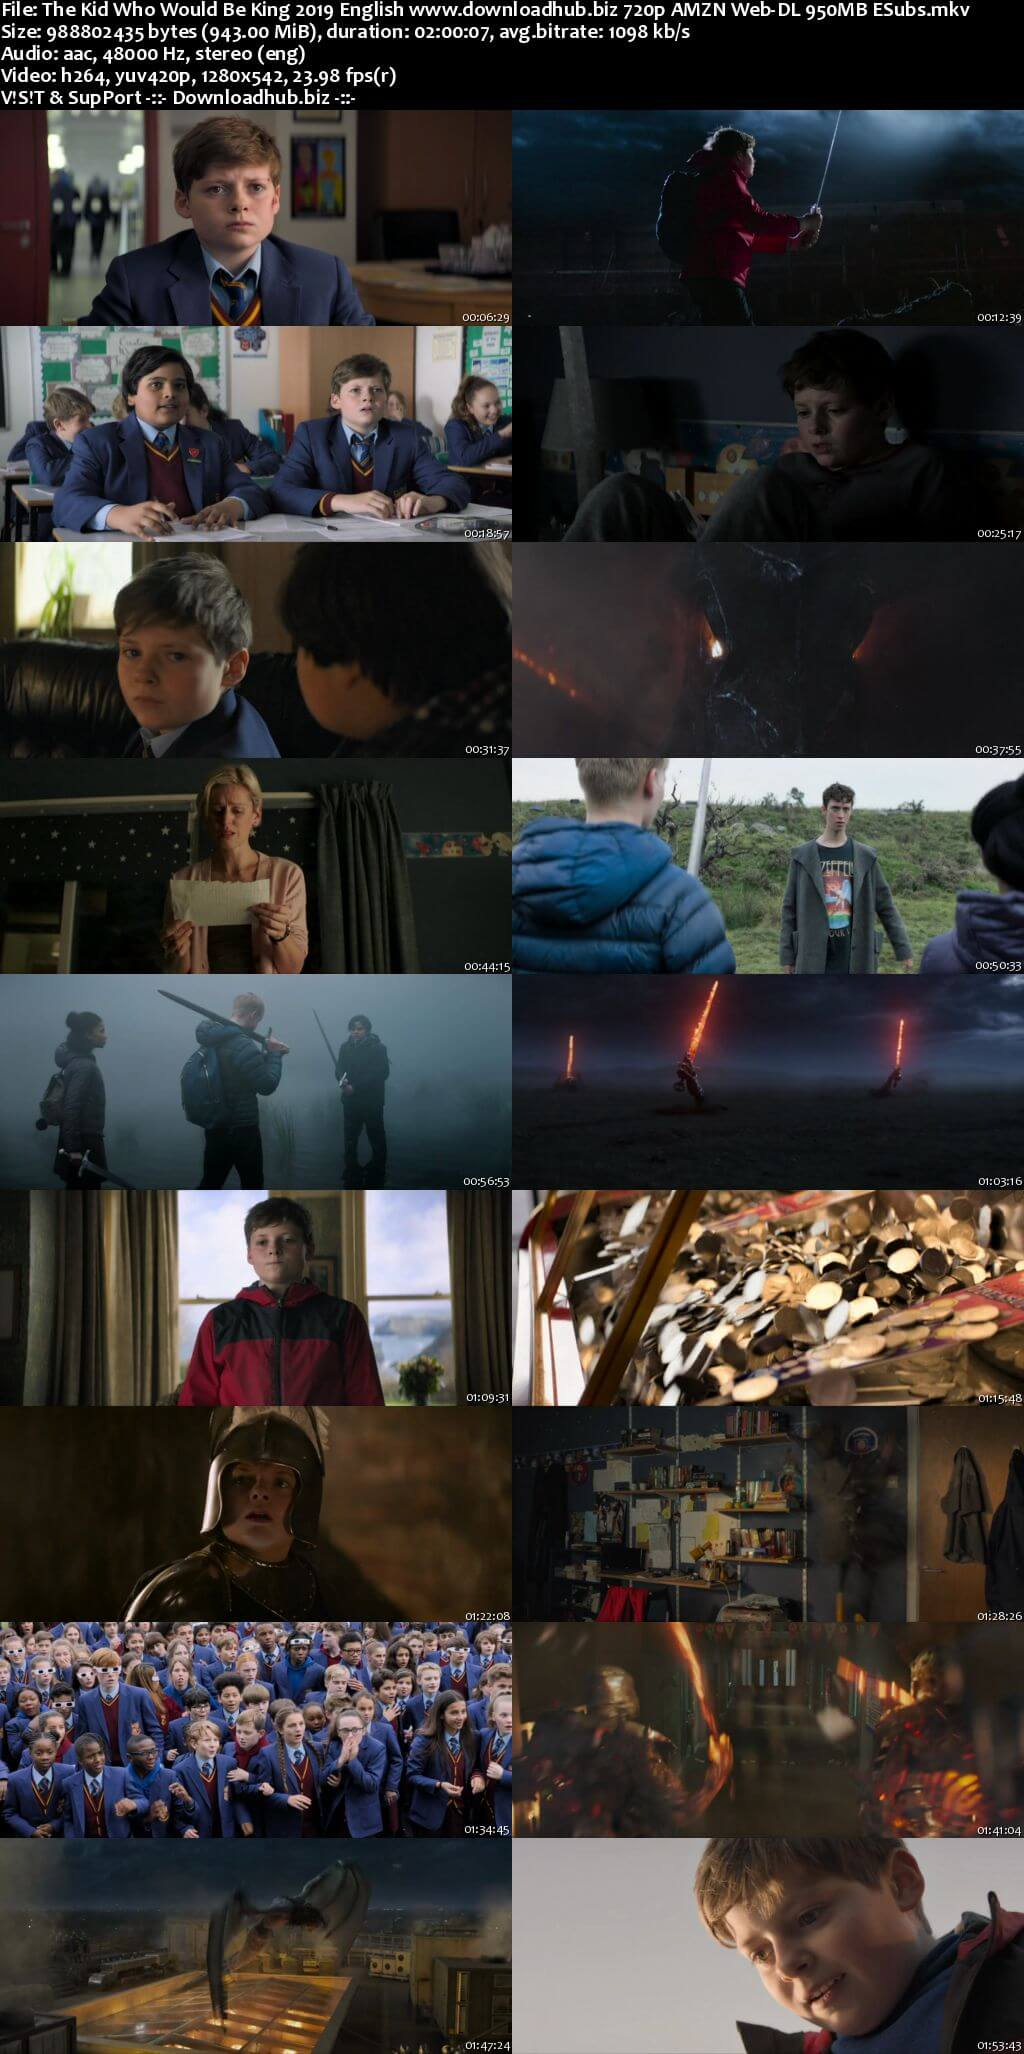 The Kid Who Would Be King 2019 English 720p AMZN Web-DL 950MB ESubs